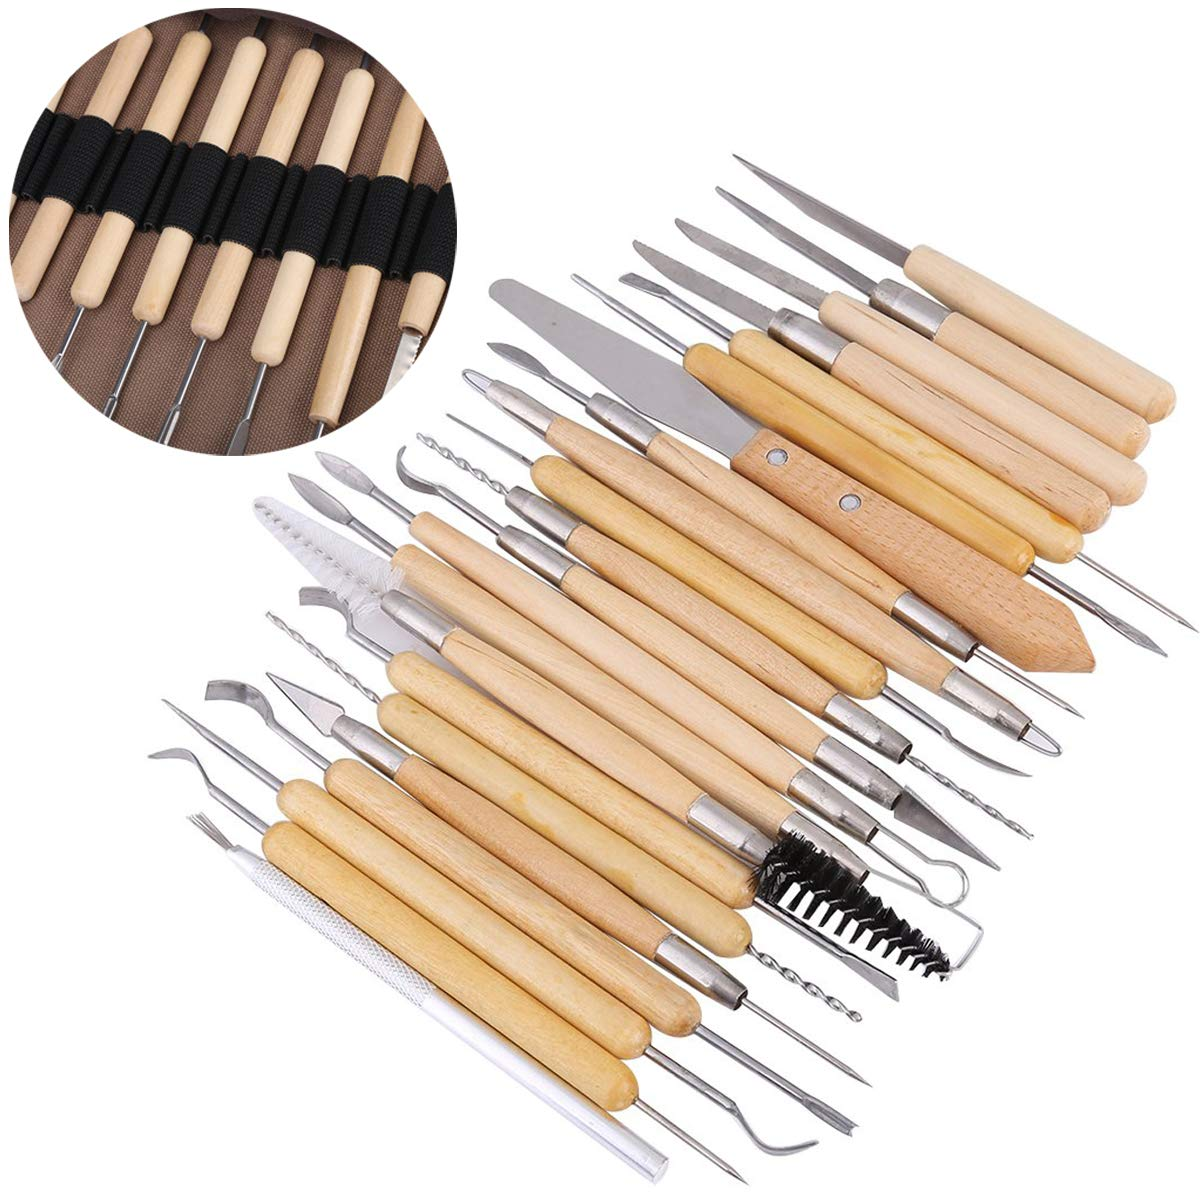 SUNOR 31 Pieces Sculpture Carving Tools Set,22 Pieces Wooden Pottery Sculpting Tools,5 Pieces Ceramic Clay Indentation Tool,4 Pieces Double-ended Metal Ball Tools with Roll Up Pouch Case Clay Sculpture Carving